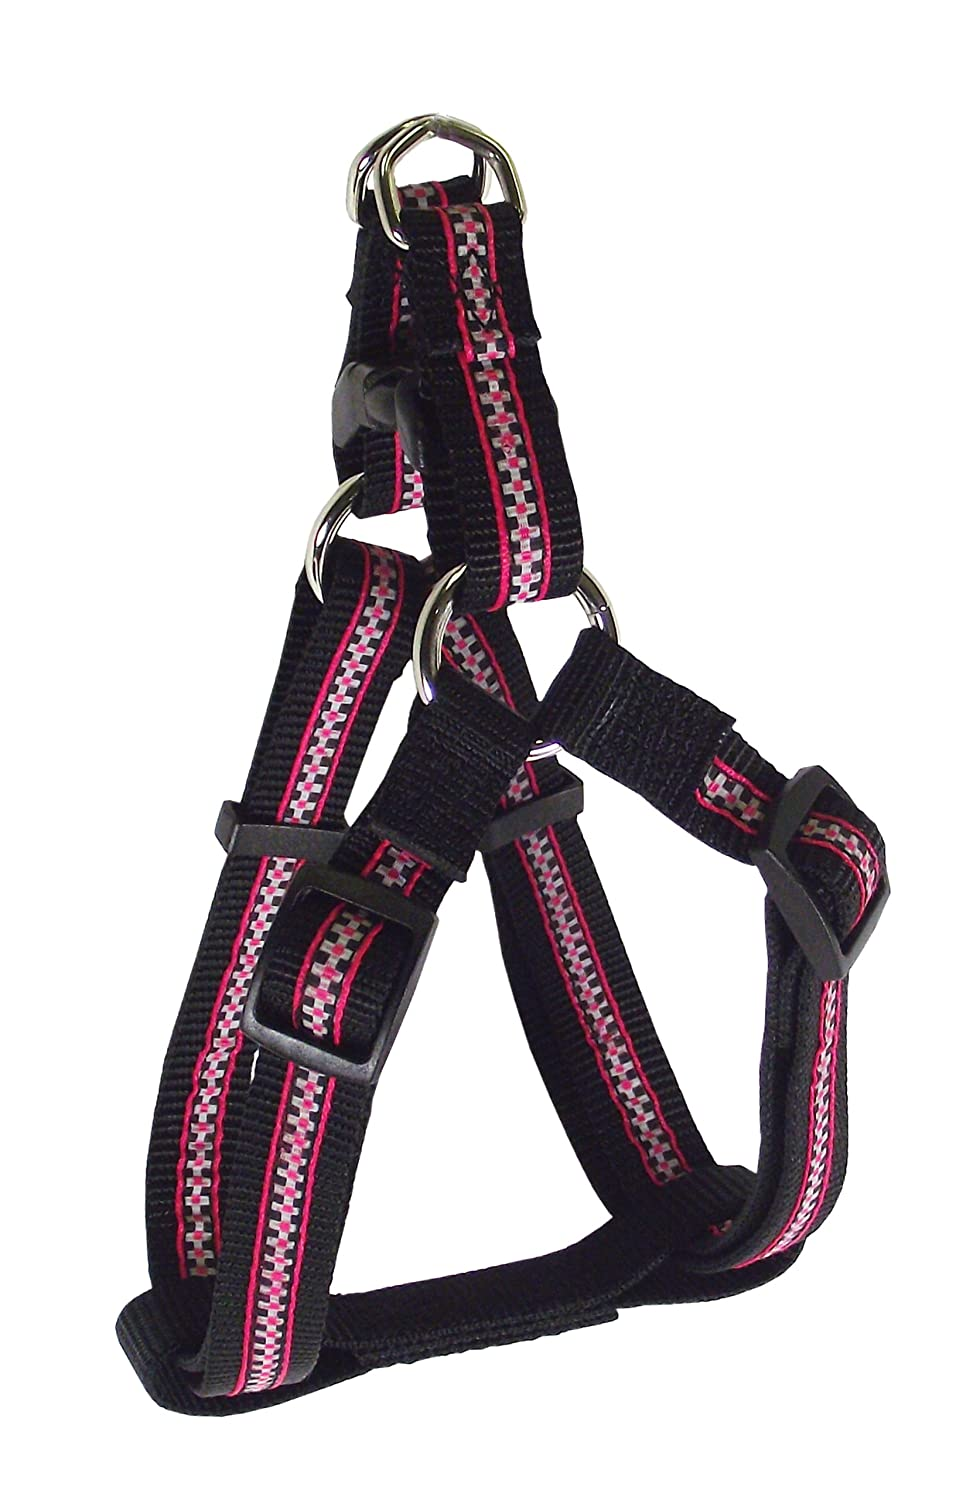 Checks Black 1\ Checks Black 1\ Hamilton Piccadilly Collection Adjustable Easy-On Dog Harness, 1-Inch by 30 to 40-Inch, Checks